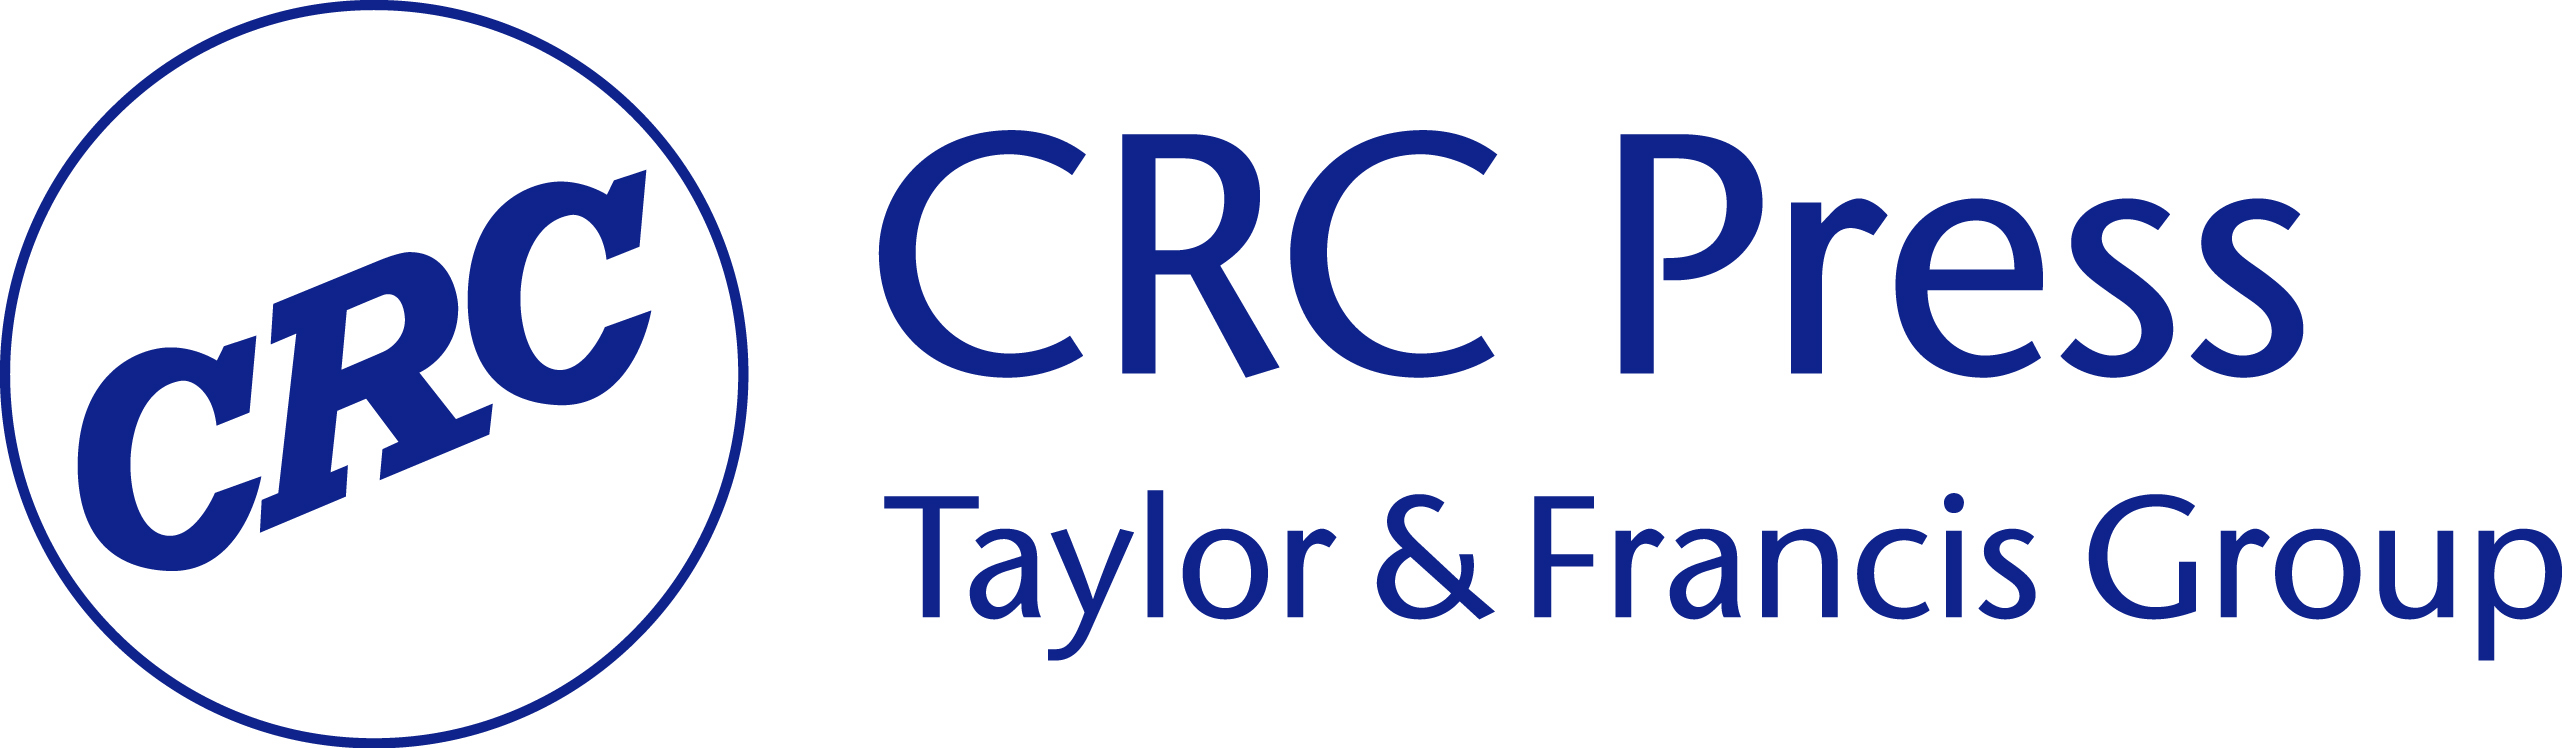 Member discounts medical indemnity insurance and medico legal crc press taylor francis group 20 discount fandeluxe Image collections